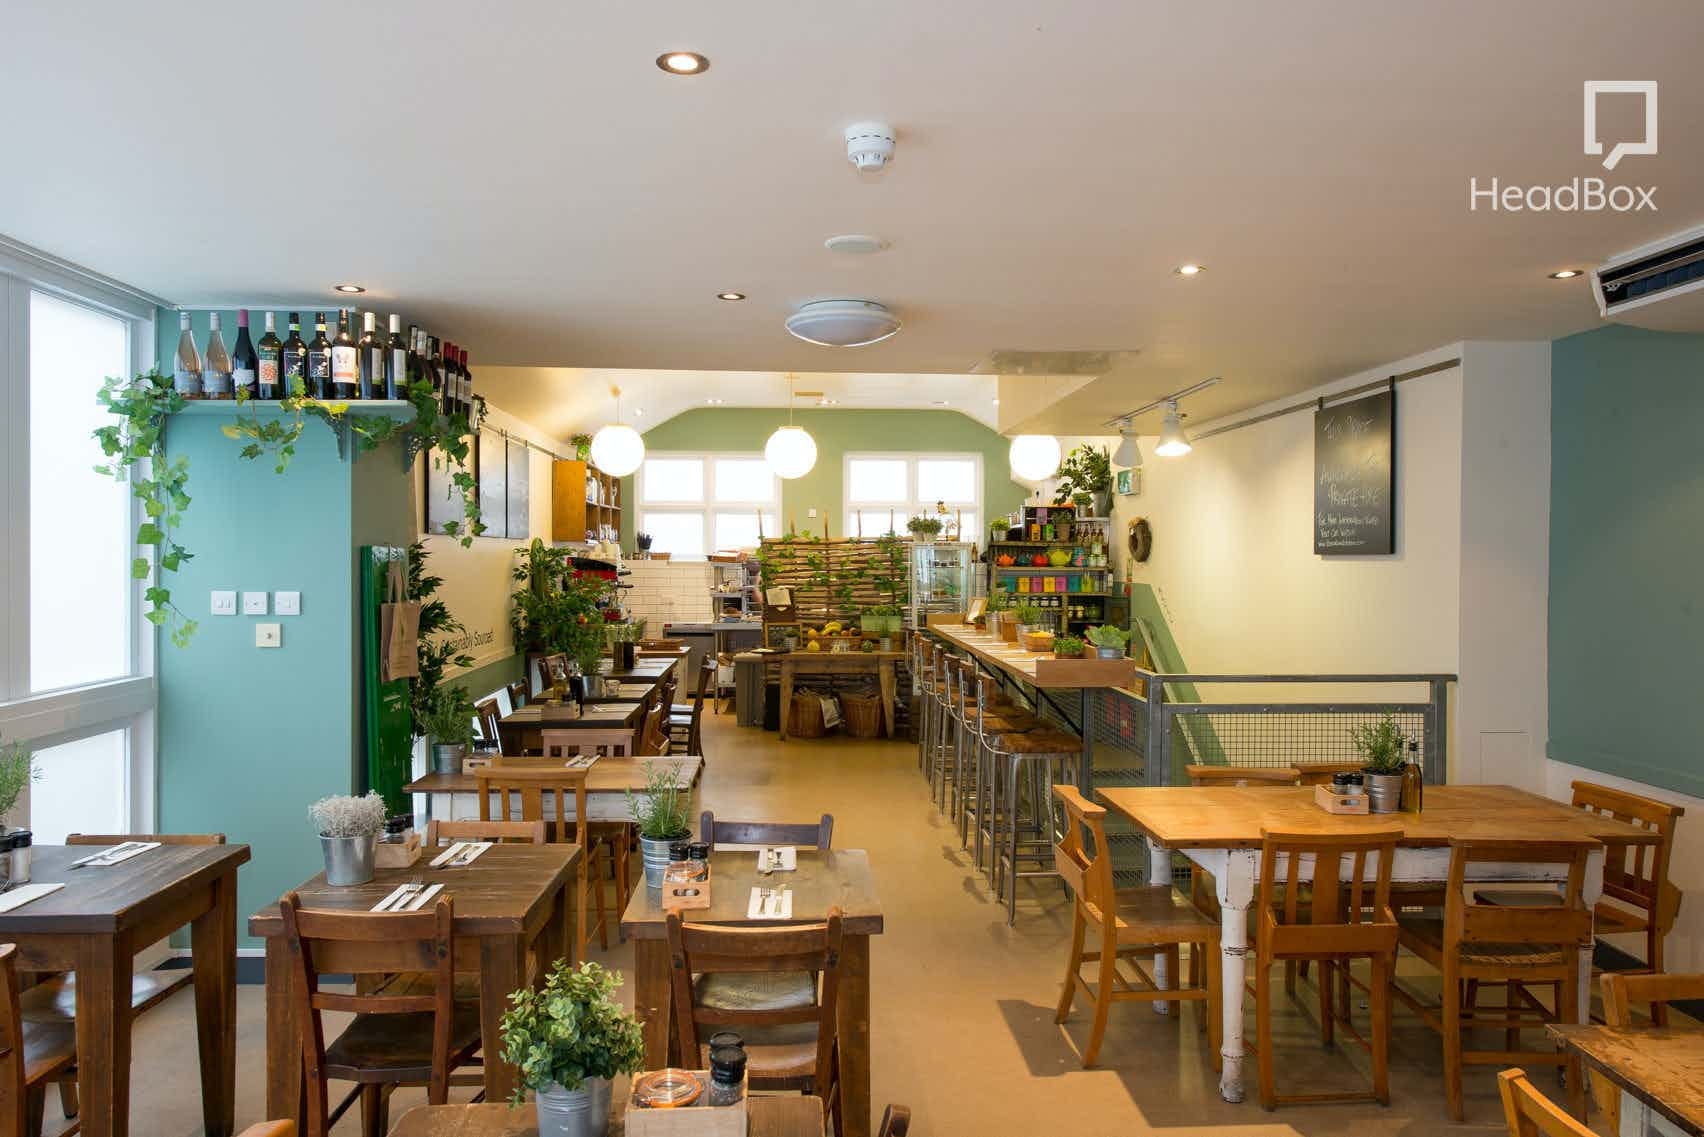 Upstairs Room, The Natural Kitchen Marylebone